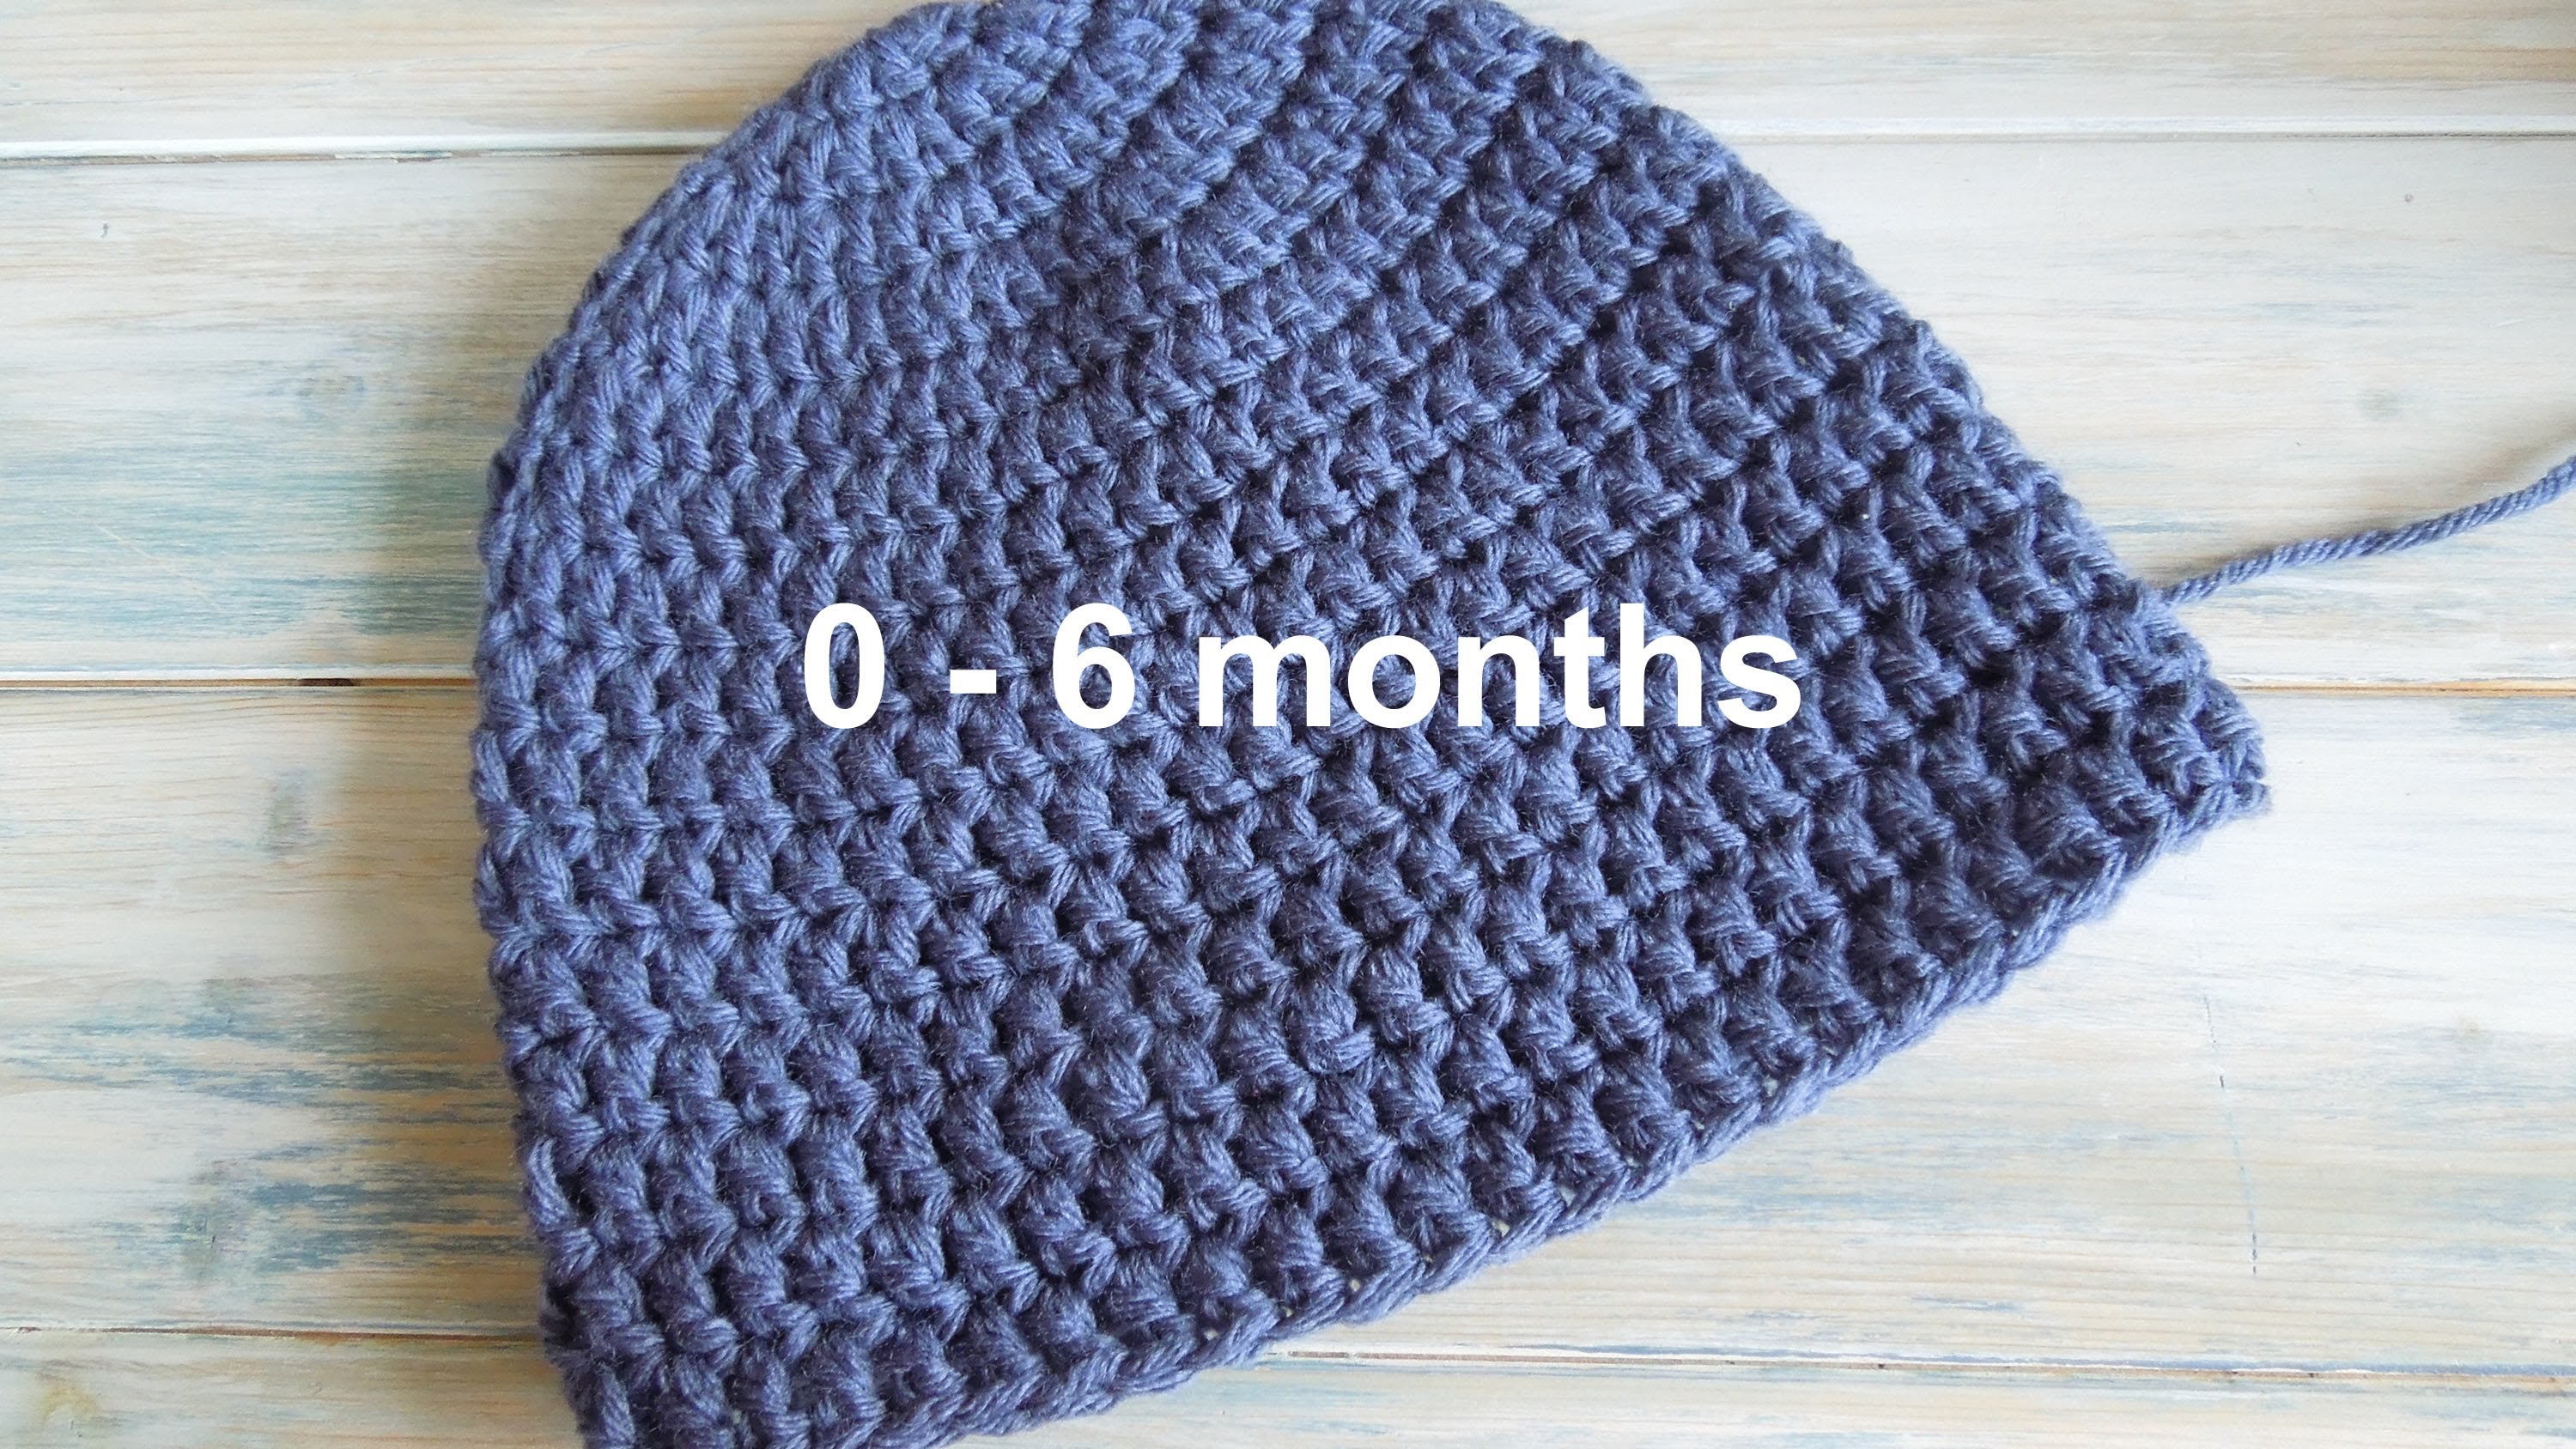 Crochet cap for babies (crochet) how to - crochet a simple baby beanie for 0-6 months - youtube DKRYPOO